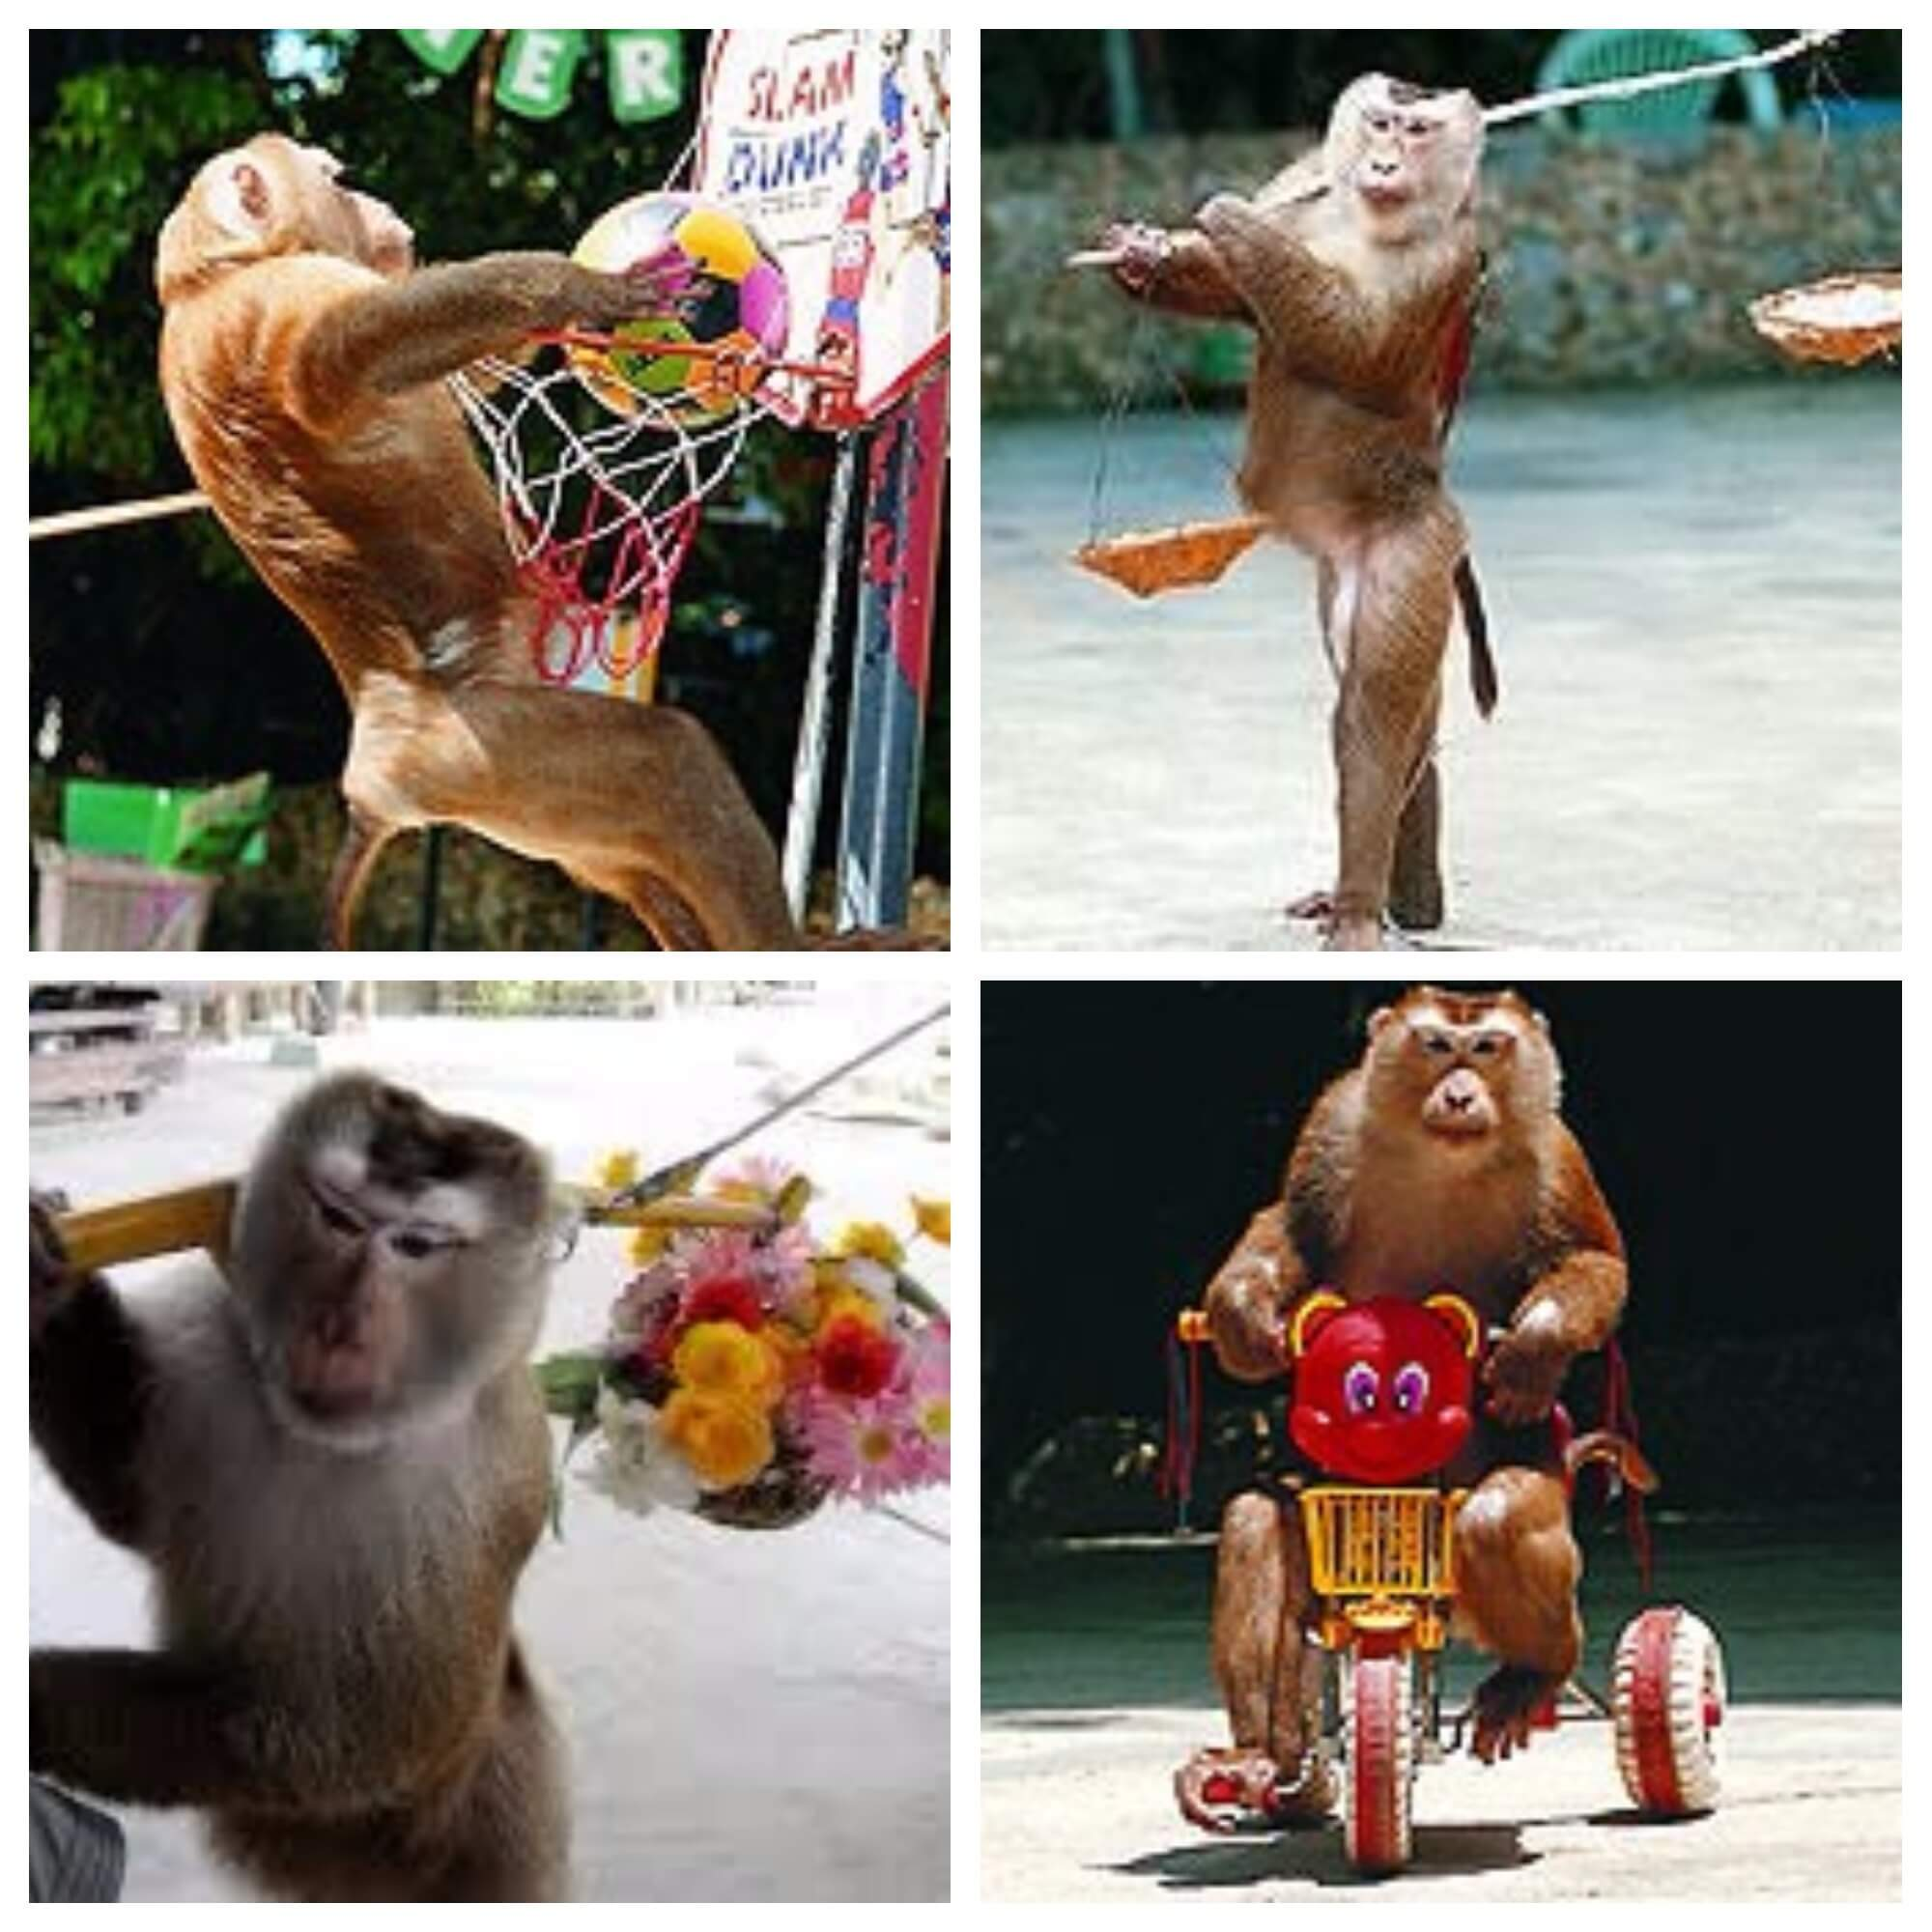 The Ultimate Travel Guide to Visit Phuket Thailand-Monkey Show